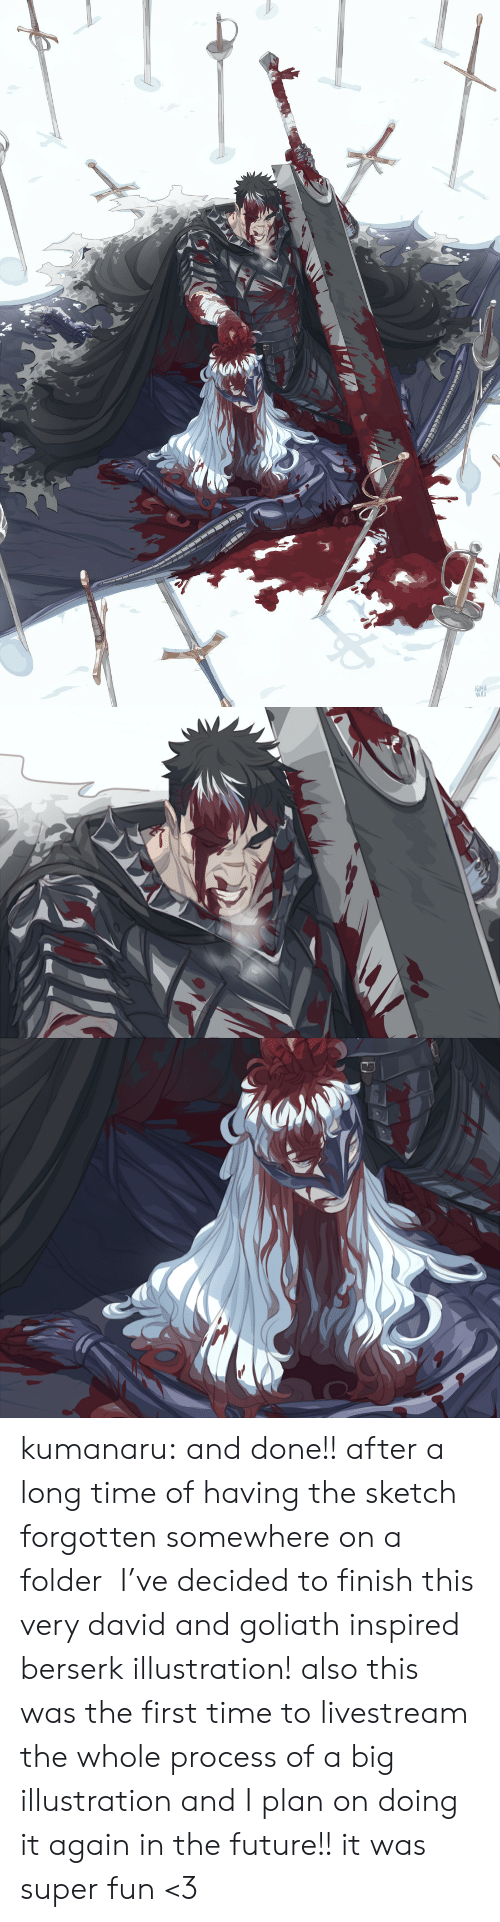 a long time: KUMA  NAKU kumanaru:  and done!! after a long time of having the sketch forgotten somewhere on a folder  I've decided to finish this very david and goliath inspired berserk illustration!  also this was the first time to livestream the whole process of a big illustration and I plan on doing it again in the future!! it was super fun <3